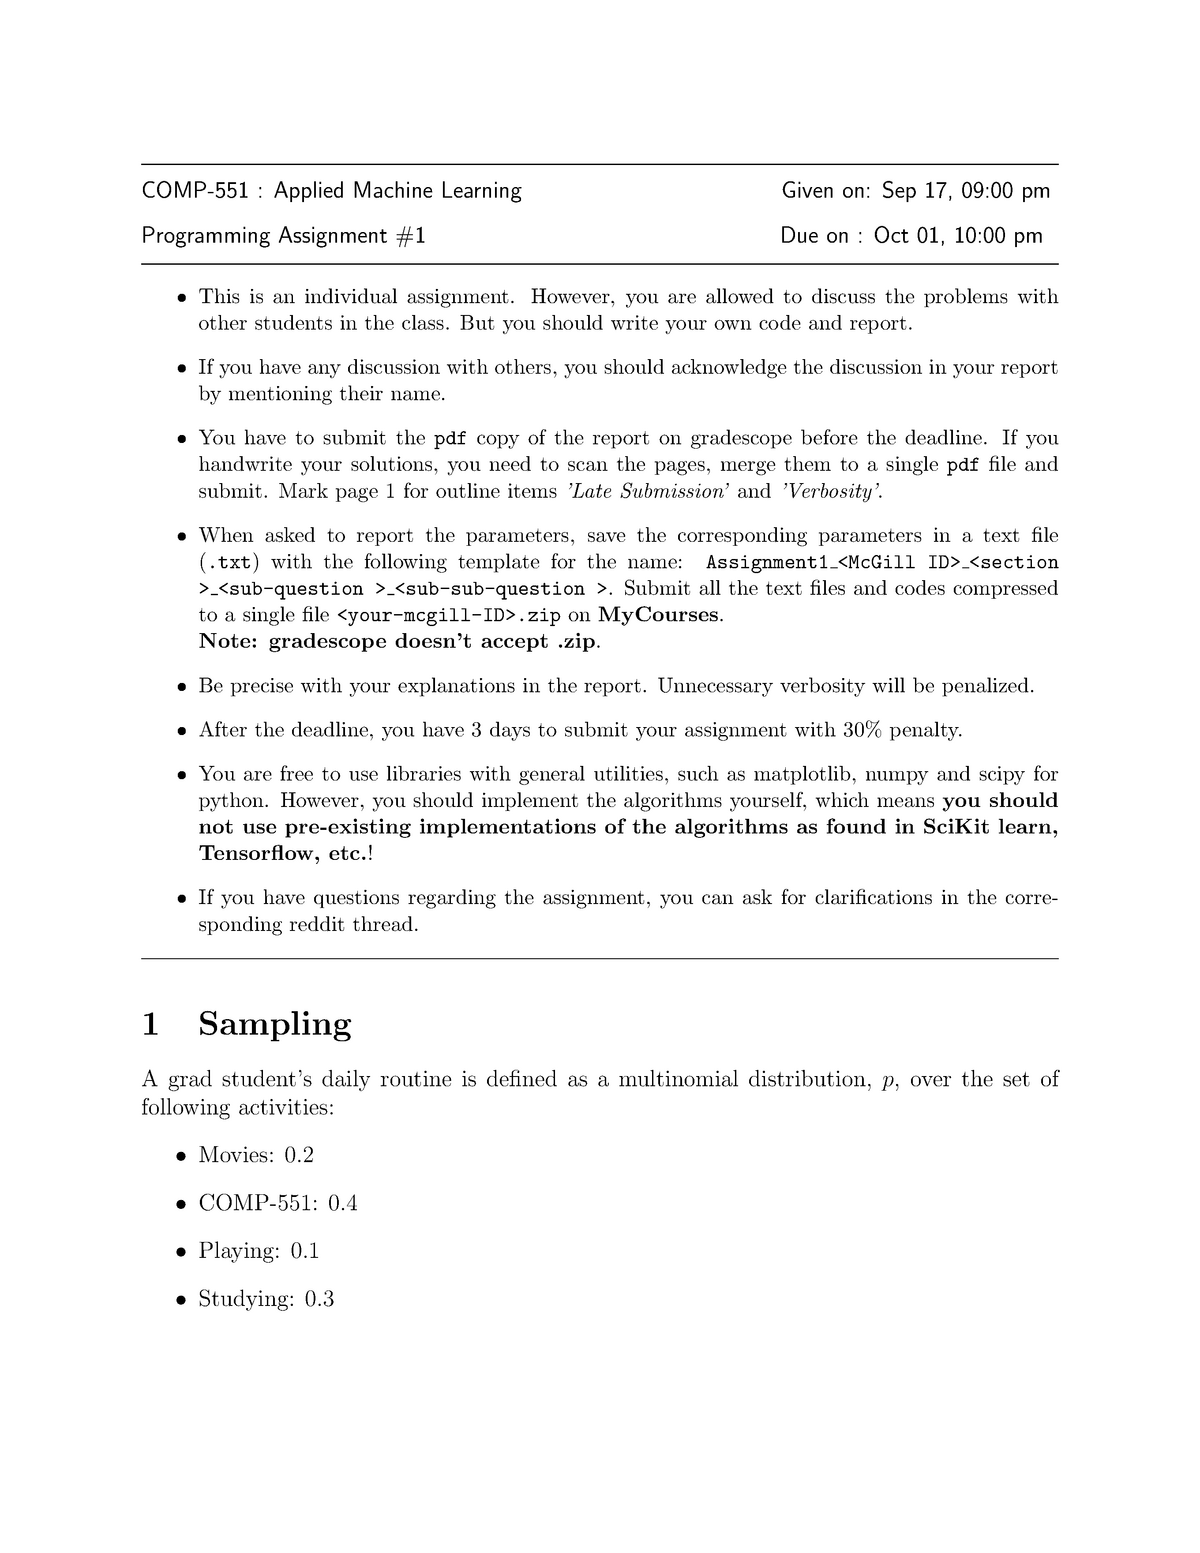 COMP 551 hwk1 - Assignment on implementing gradient descent